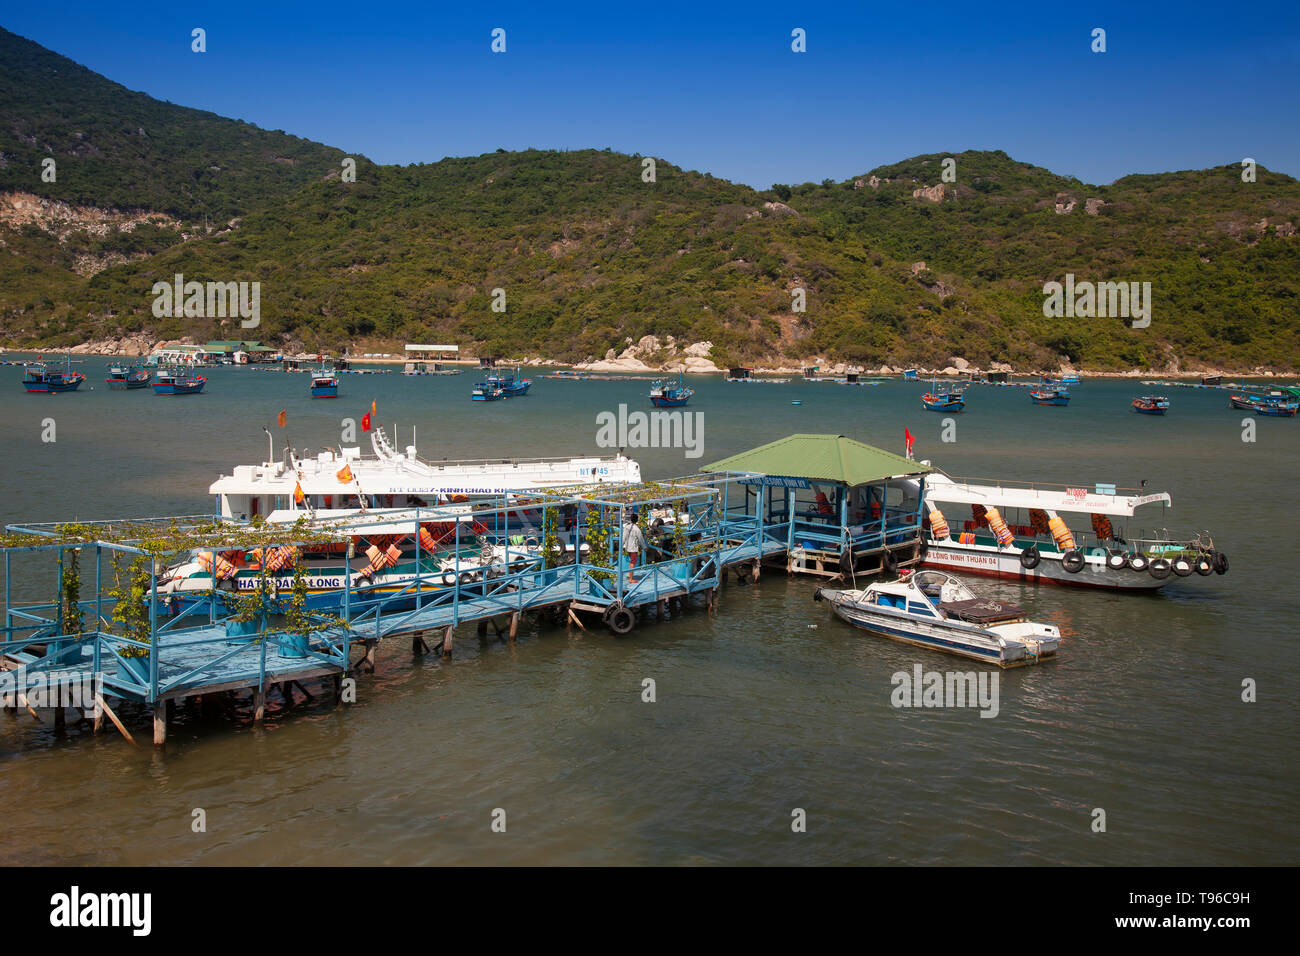 Boat station for tour boats in the bay at Vinh Hy, South China Sea, Ninh Thuan, Vietnam - Stock Image